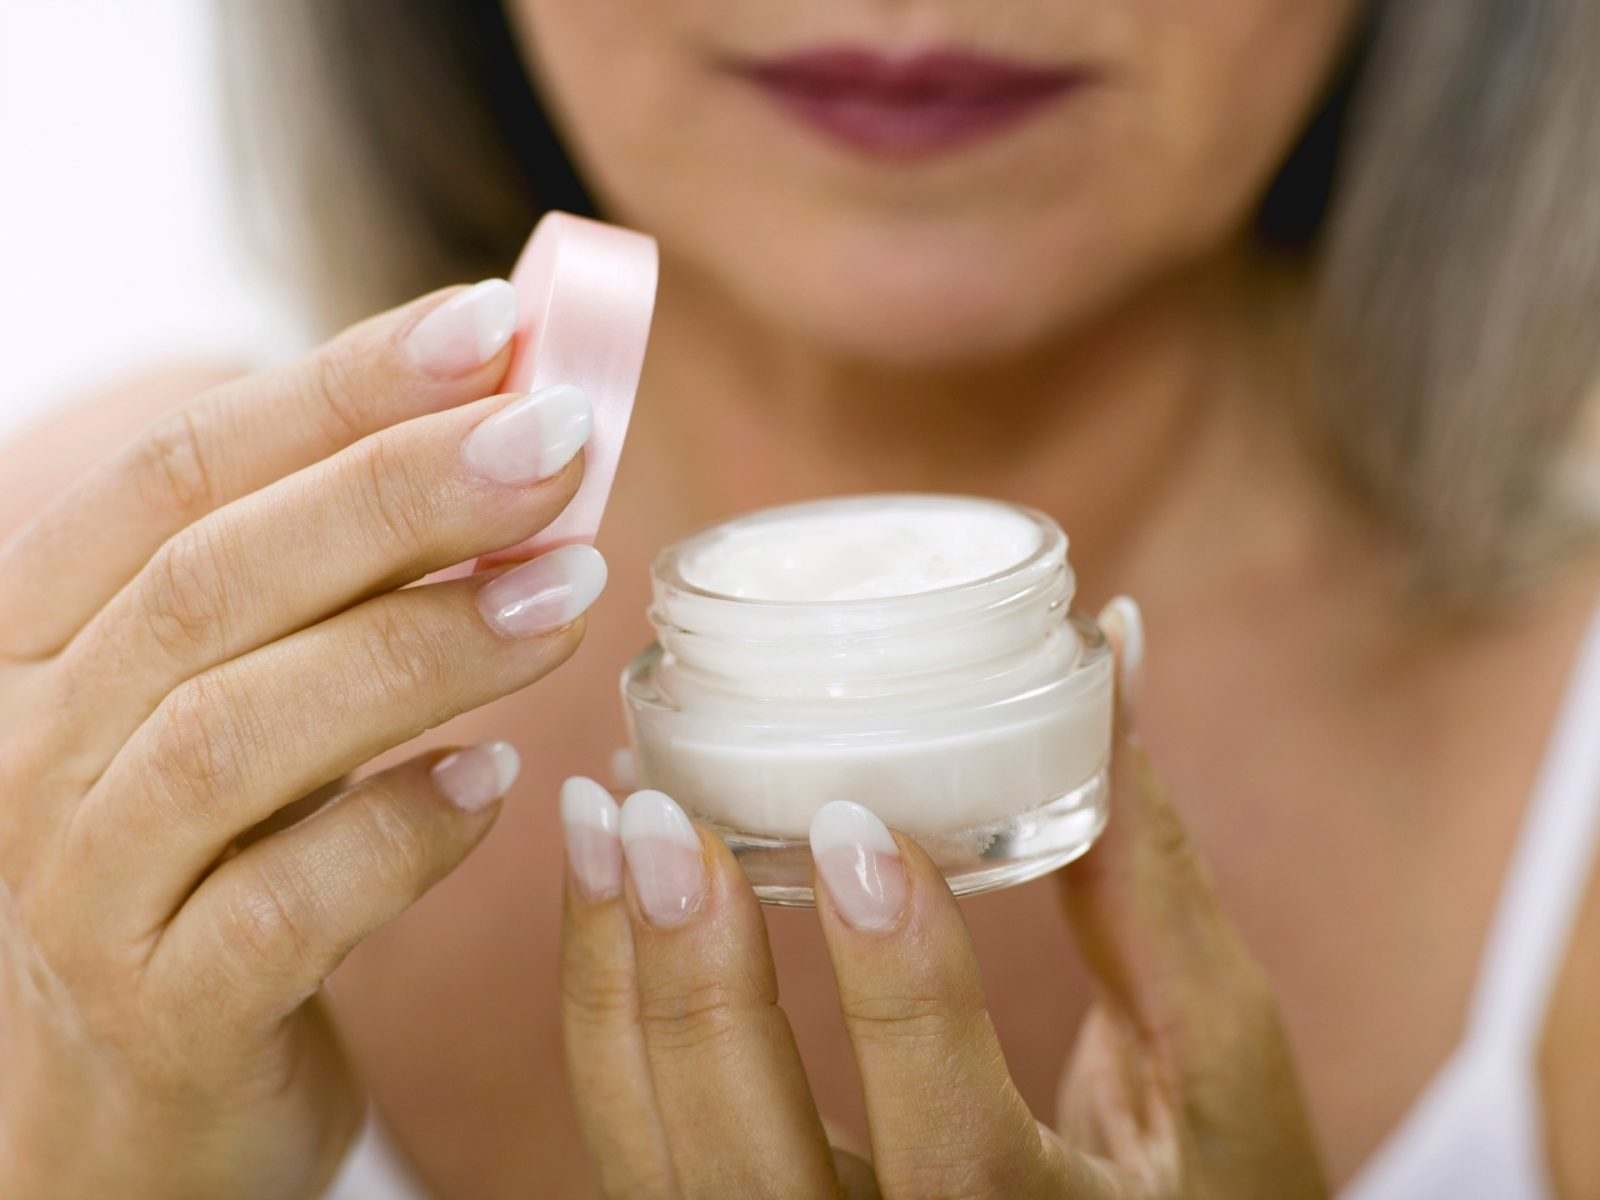 Consistency is the key when it comes to using skincare products and results won't occur overnight.